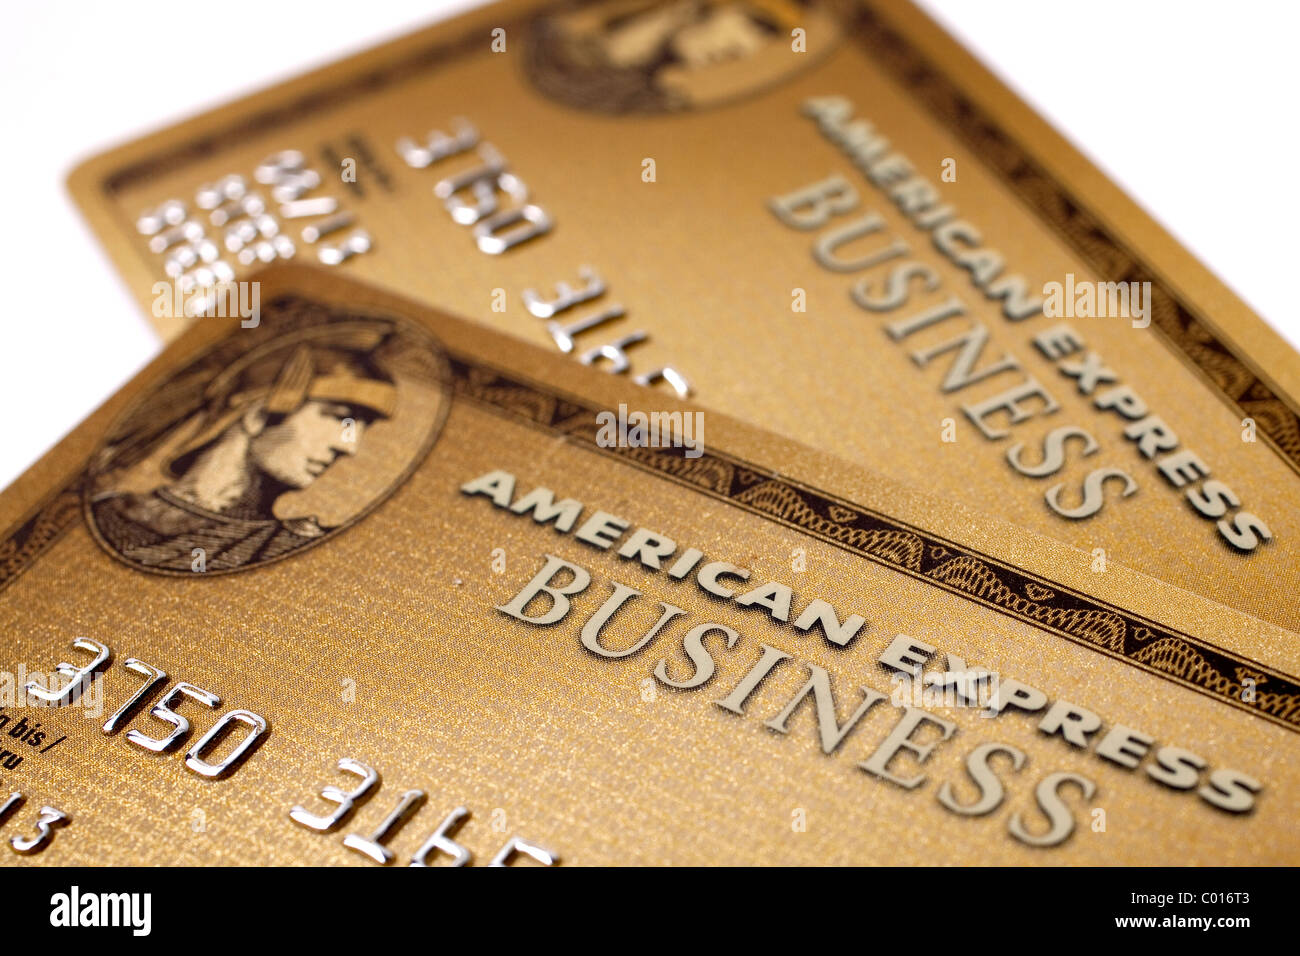 Credit cards american express amex gold business card stock photo credit cards american express amex gold business card colourmoves